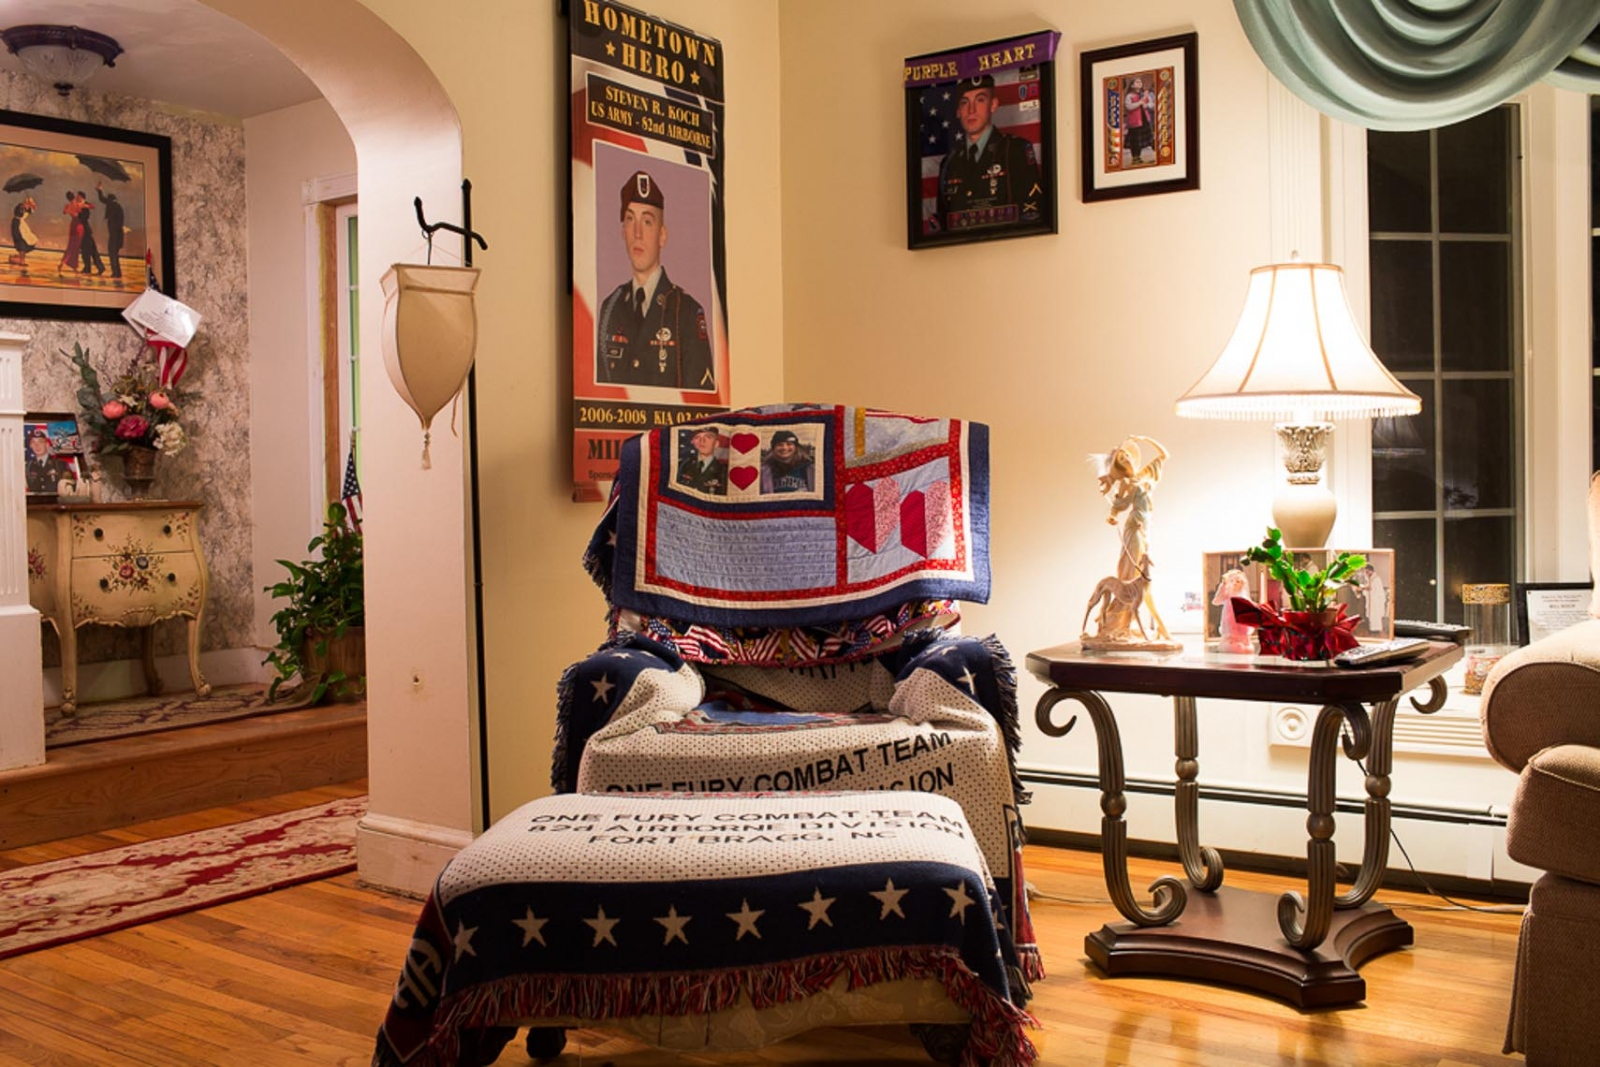 For visitors, the Kochs house can feel overwhelming. Its a memorial. Stevens favorite chair is draped with a quilt a friend made with pictures of him and his sister. No one sits there. For CNN Digital